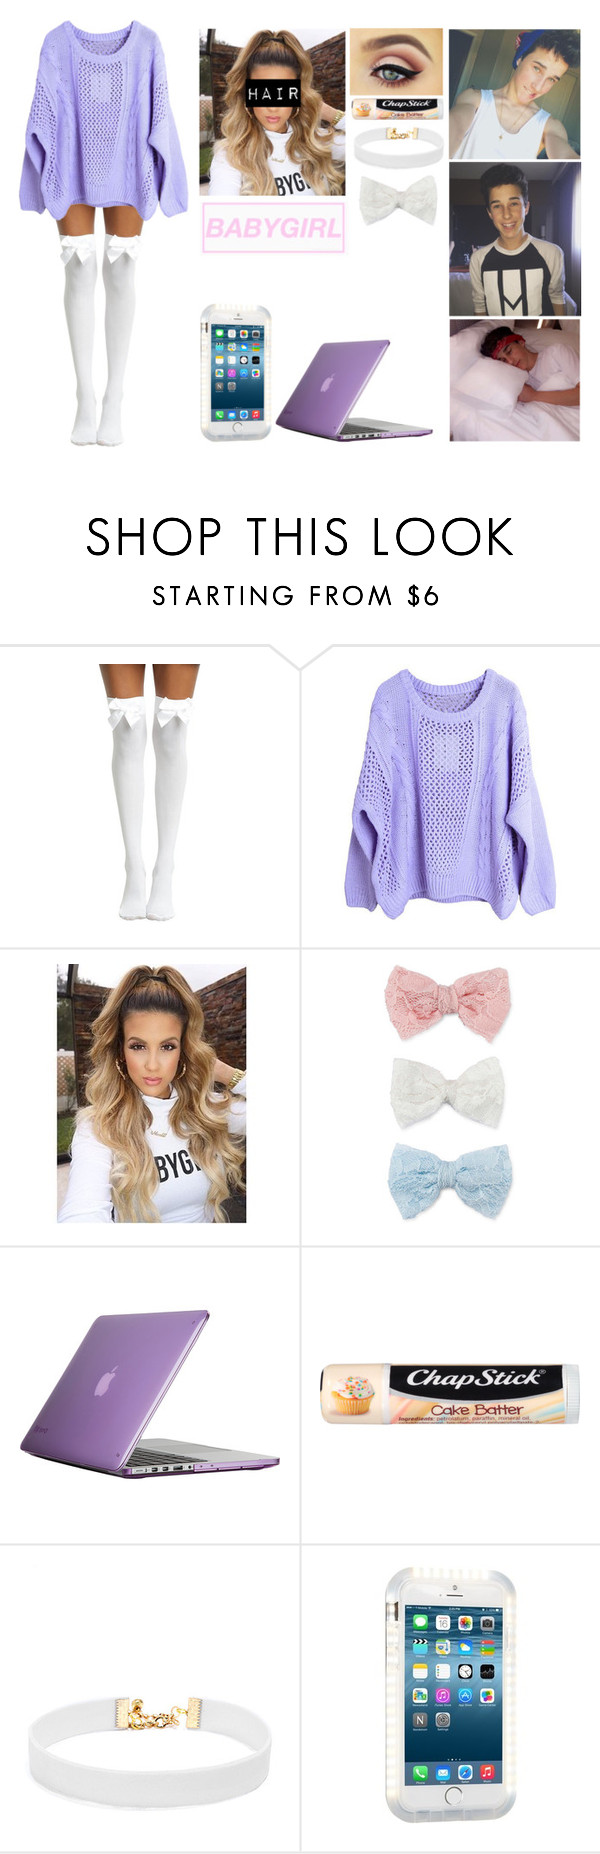 """Hunter Rowland imagine #4"" by jasmine-the-basic-penguin on Polyvore featuring Decree, Speck, Chapstick, Vanessa Mooney and Ty-Lite"